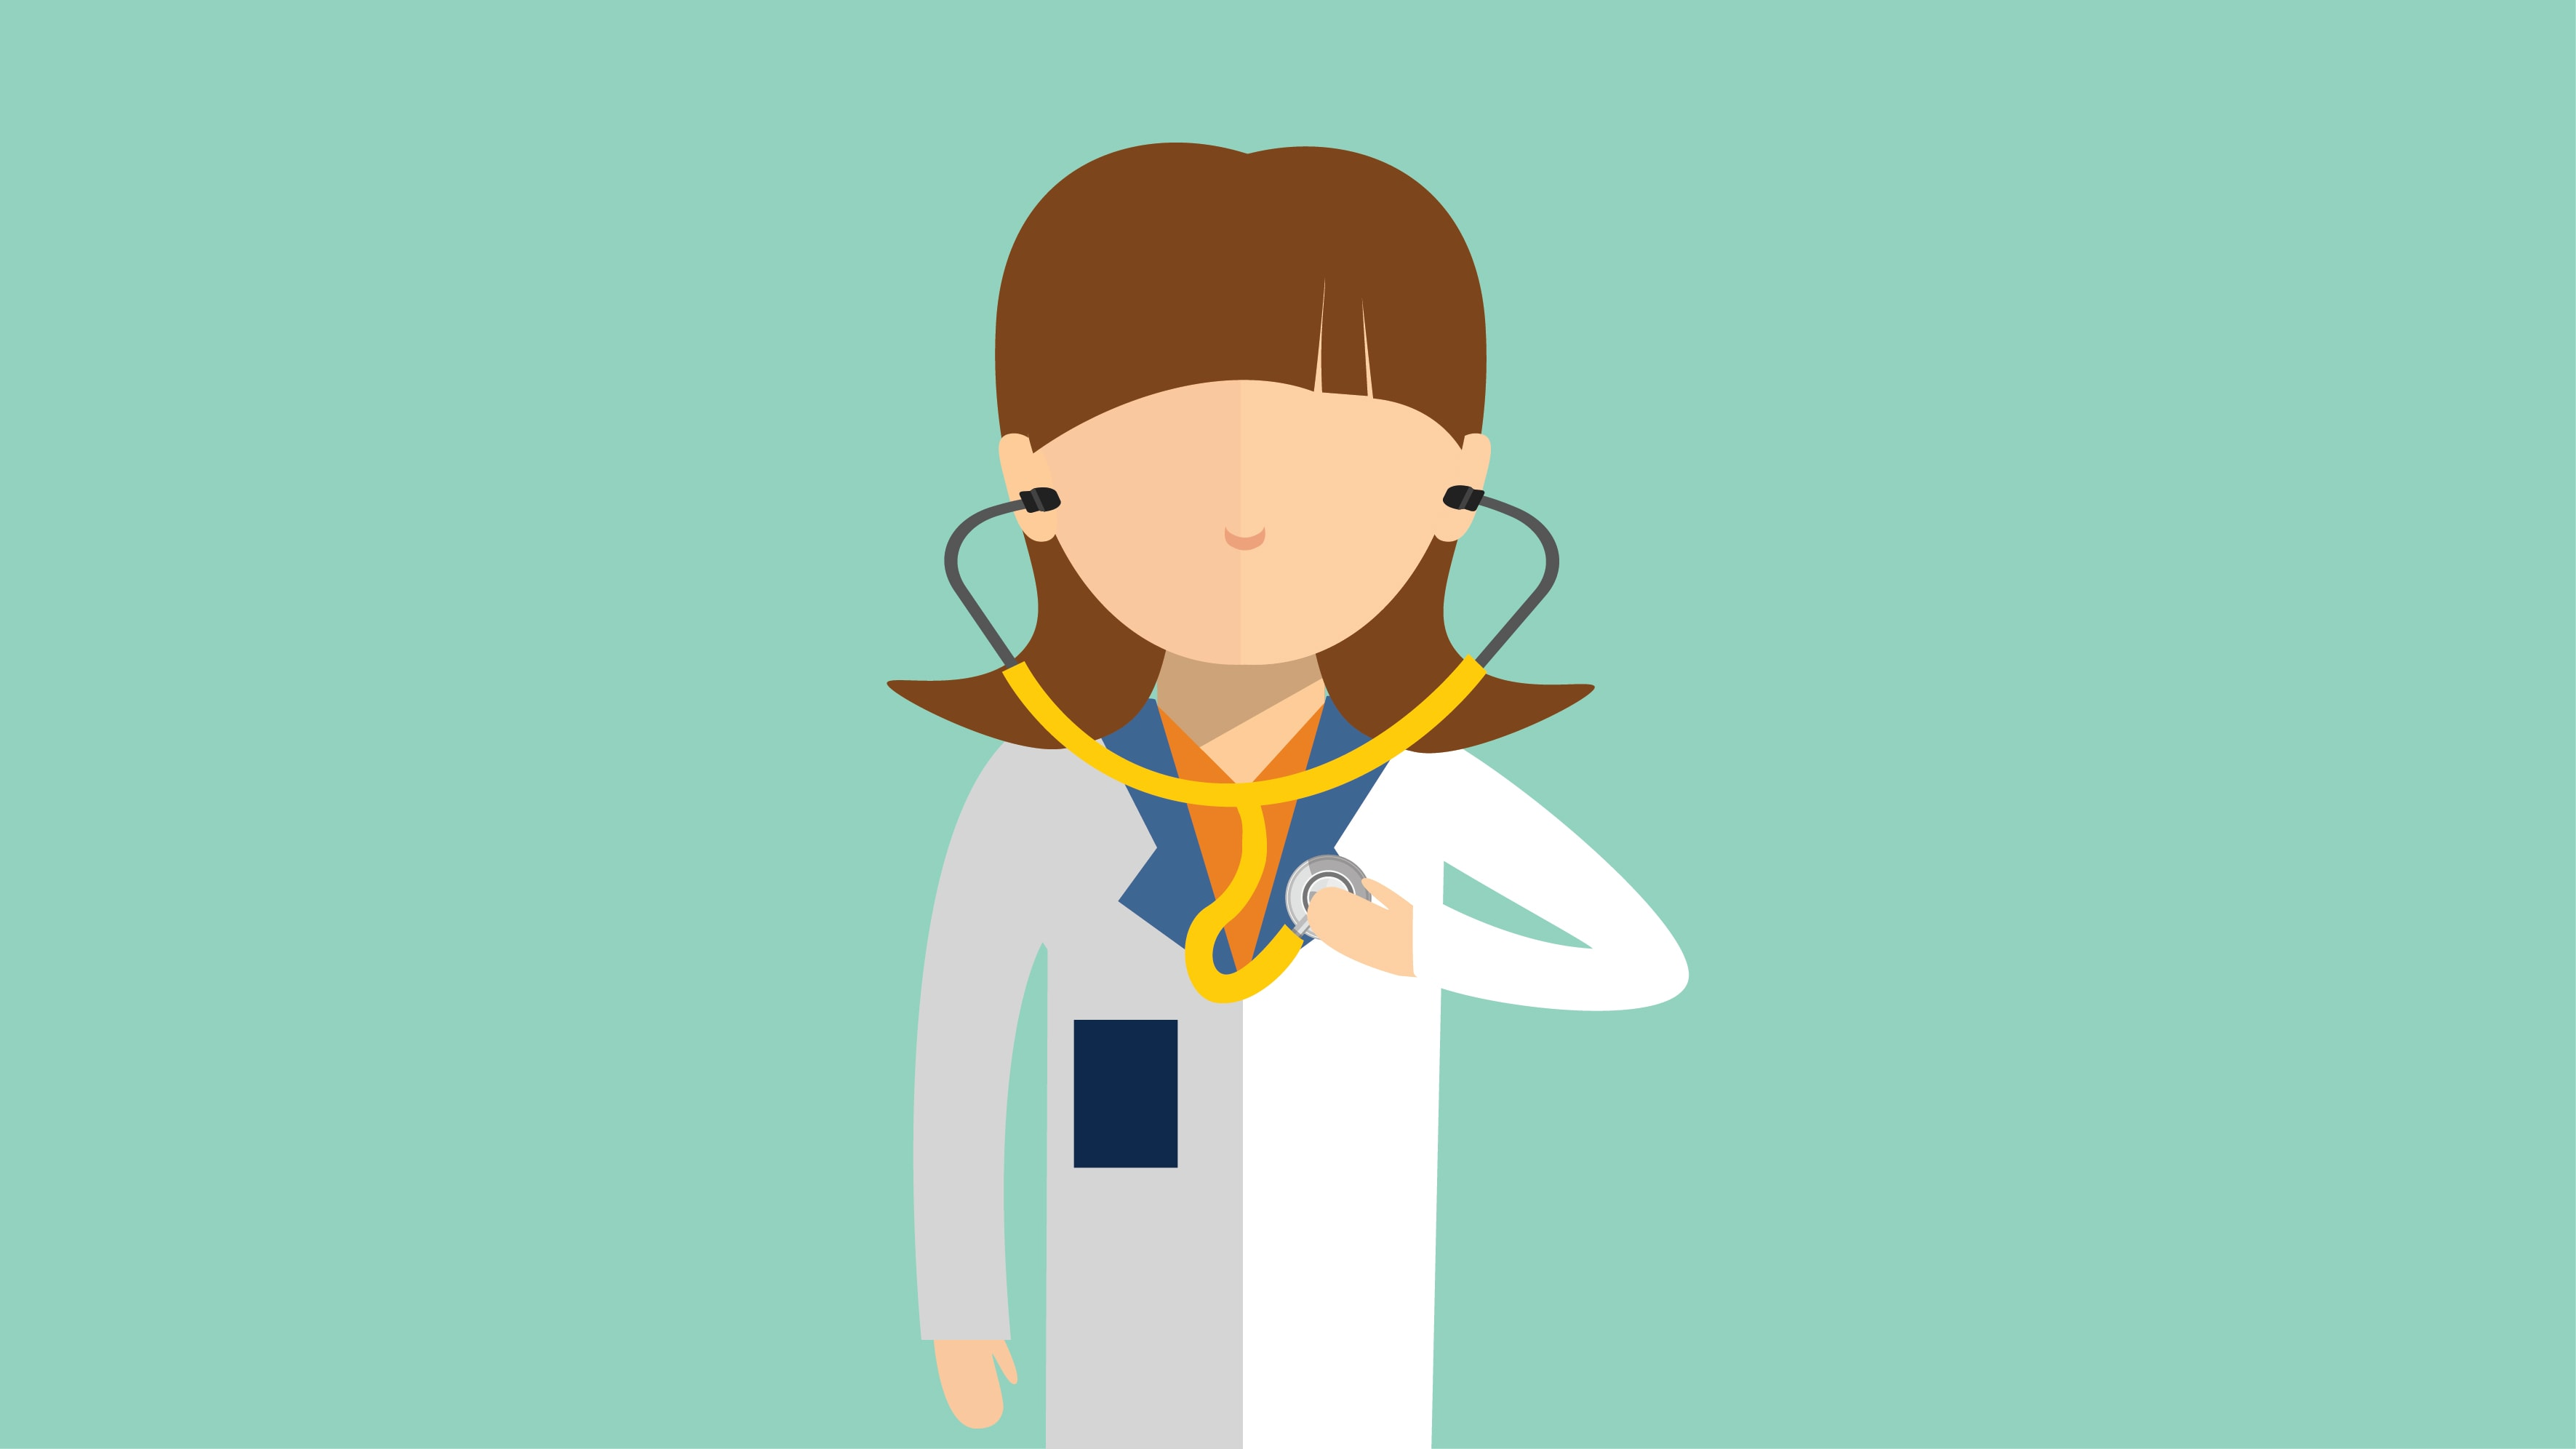 Worry clipart depression treatment. Physician doctors with undiagnosed